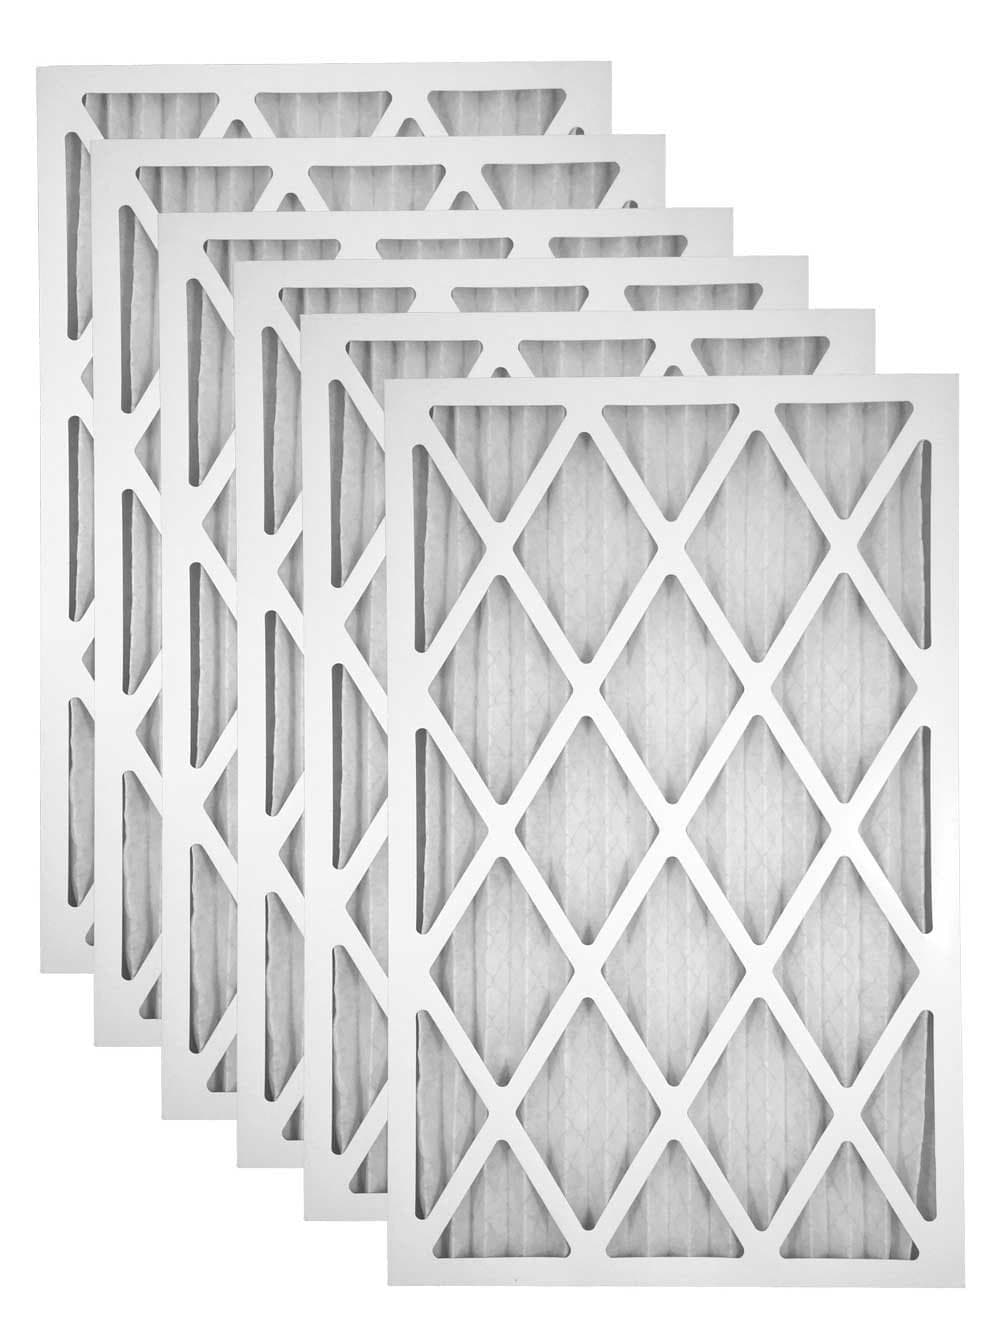 21.5x23.25x1 Merv 11 Pleated AC Furnace Filter - Case of 6